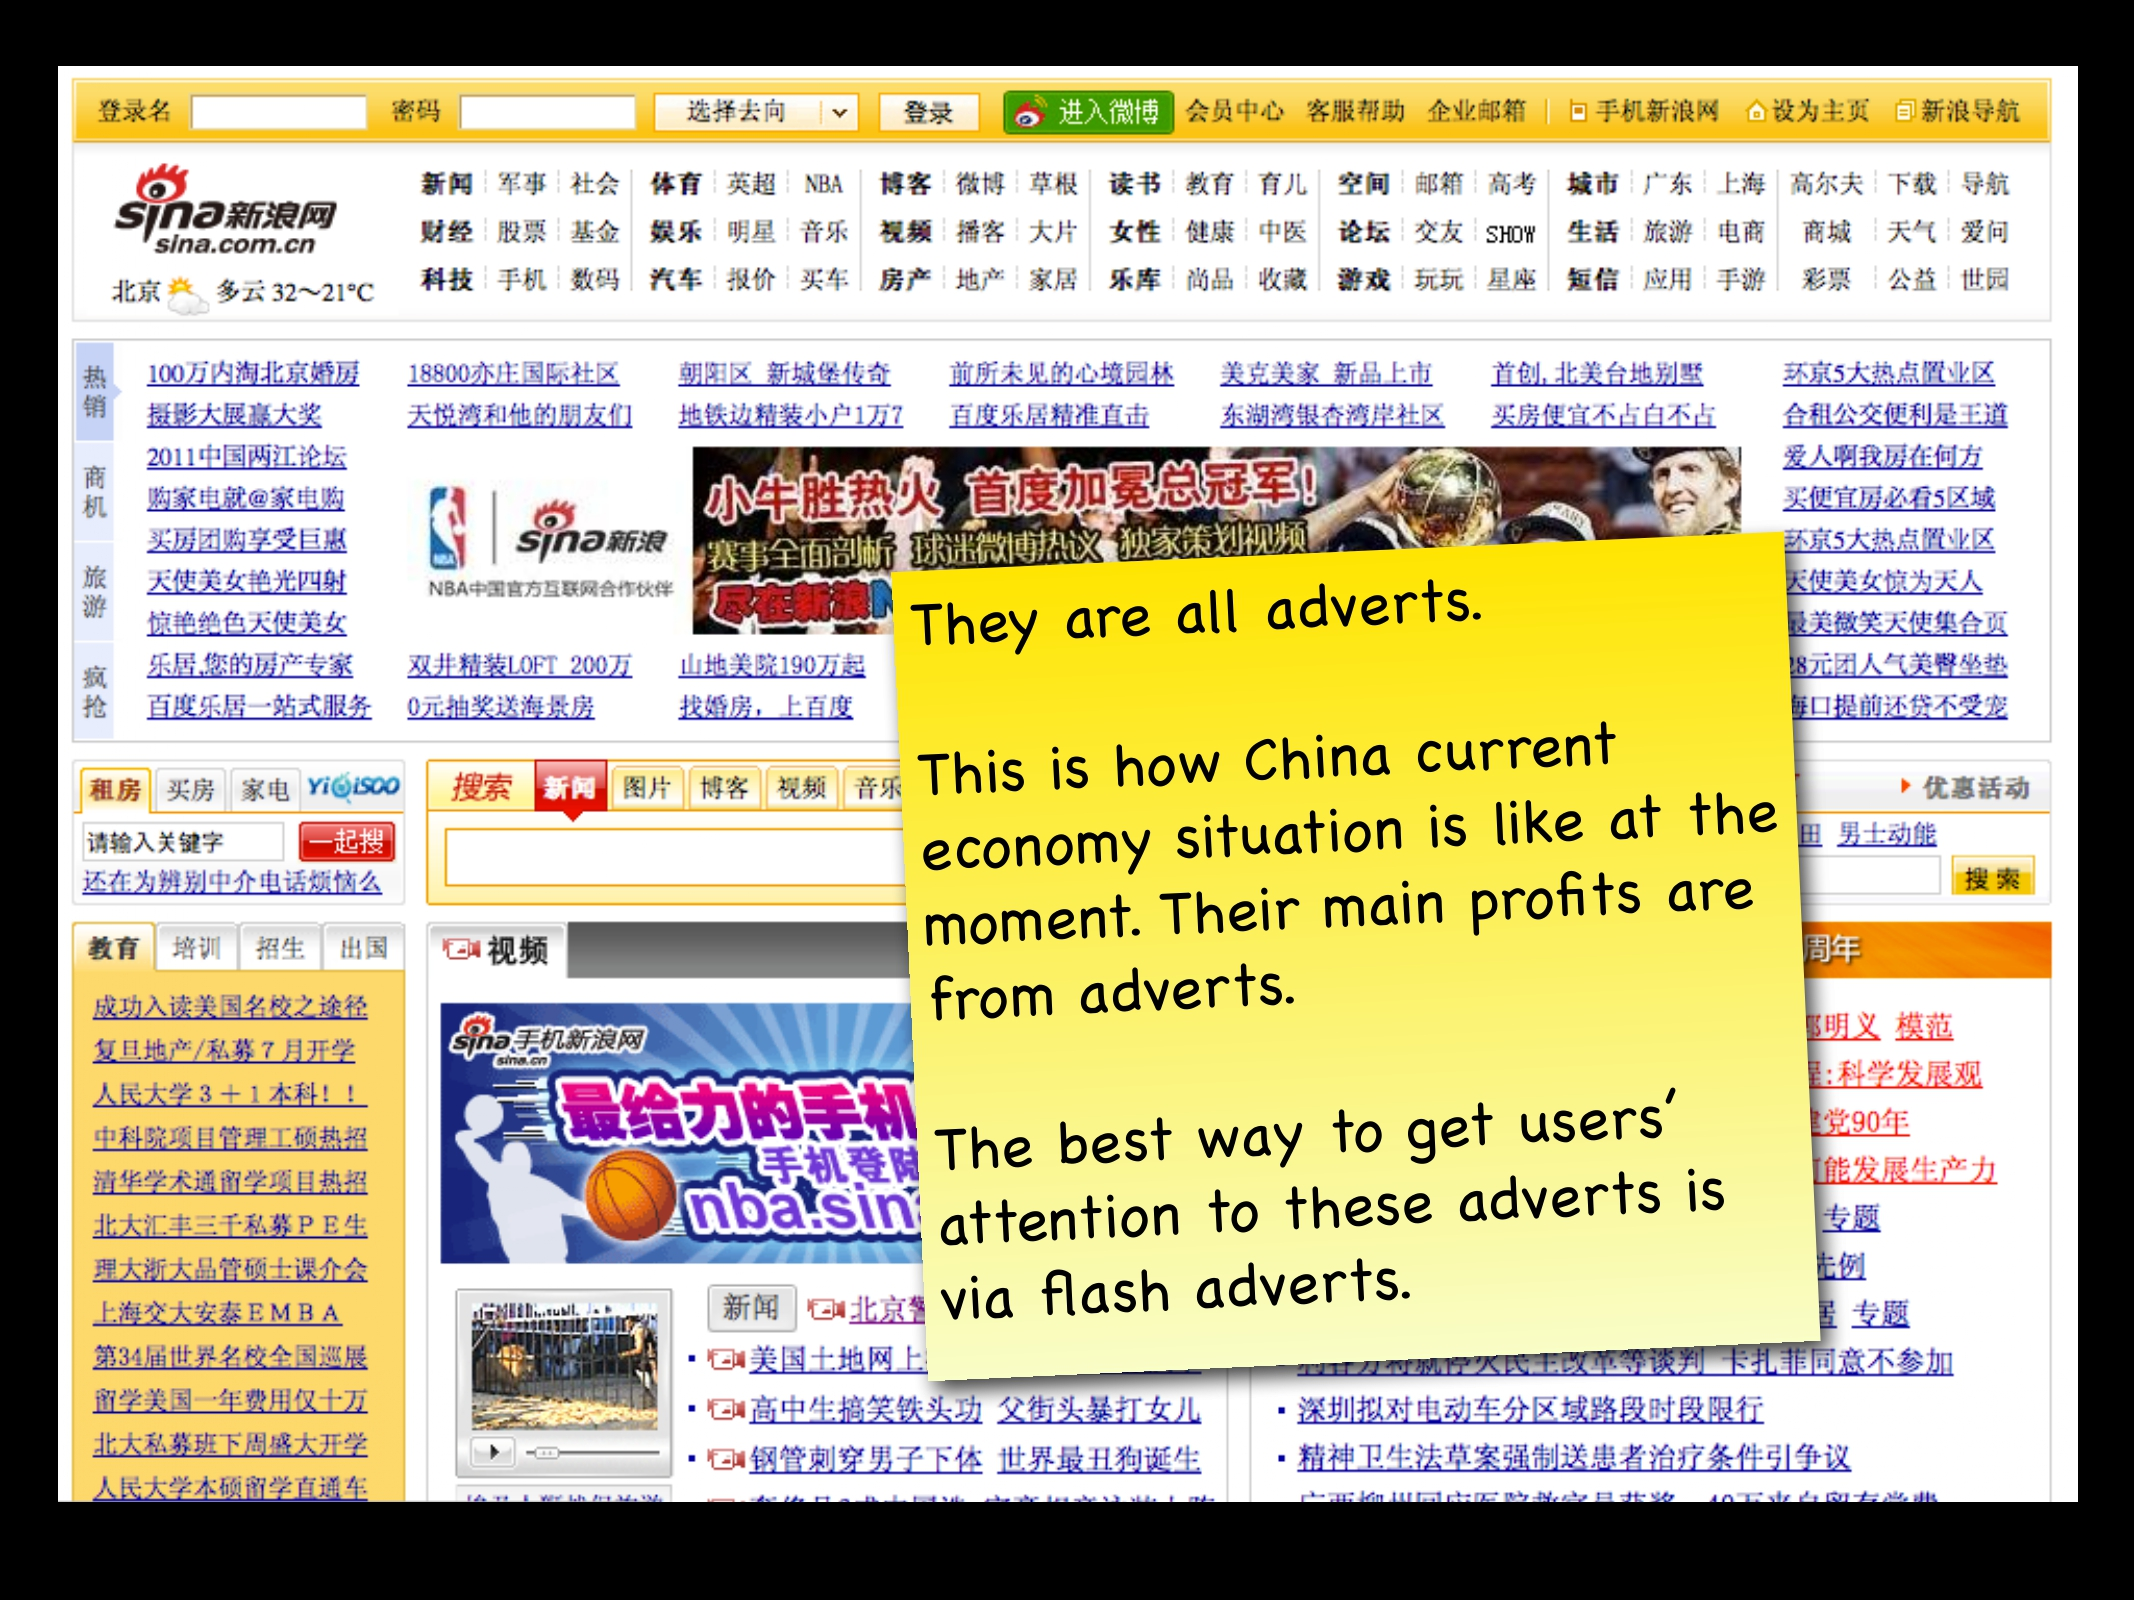 Chinese Web Design Patterns 2011_pages-to-jpg-0034.jpg